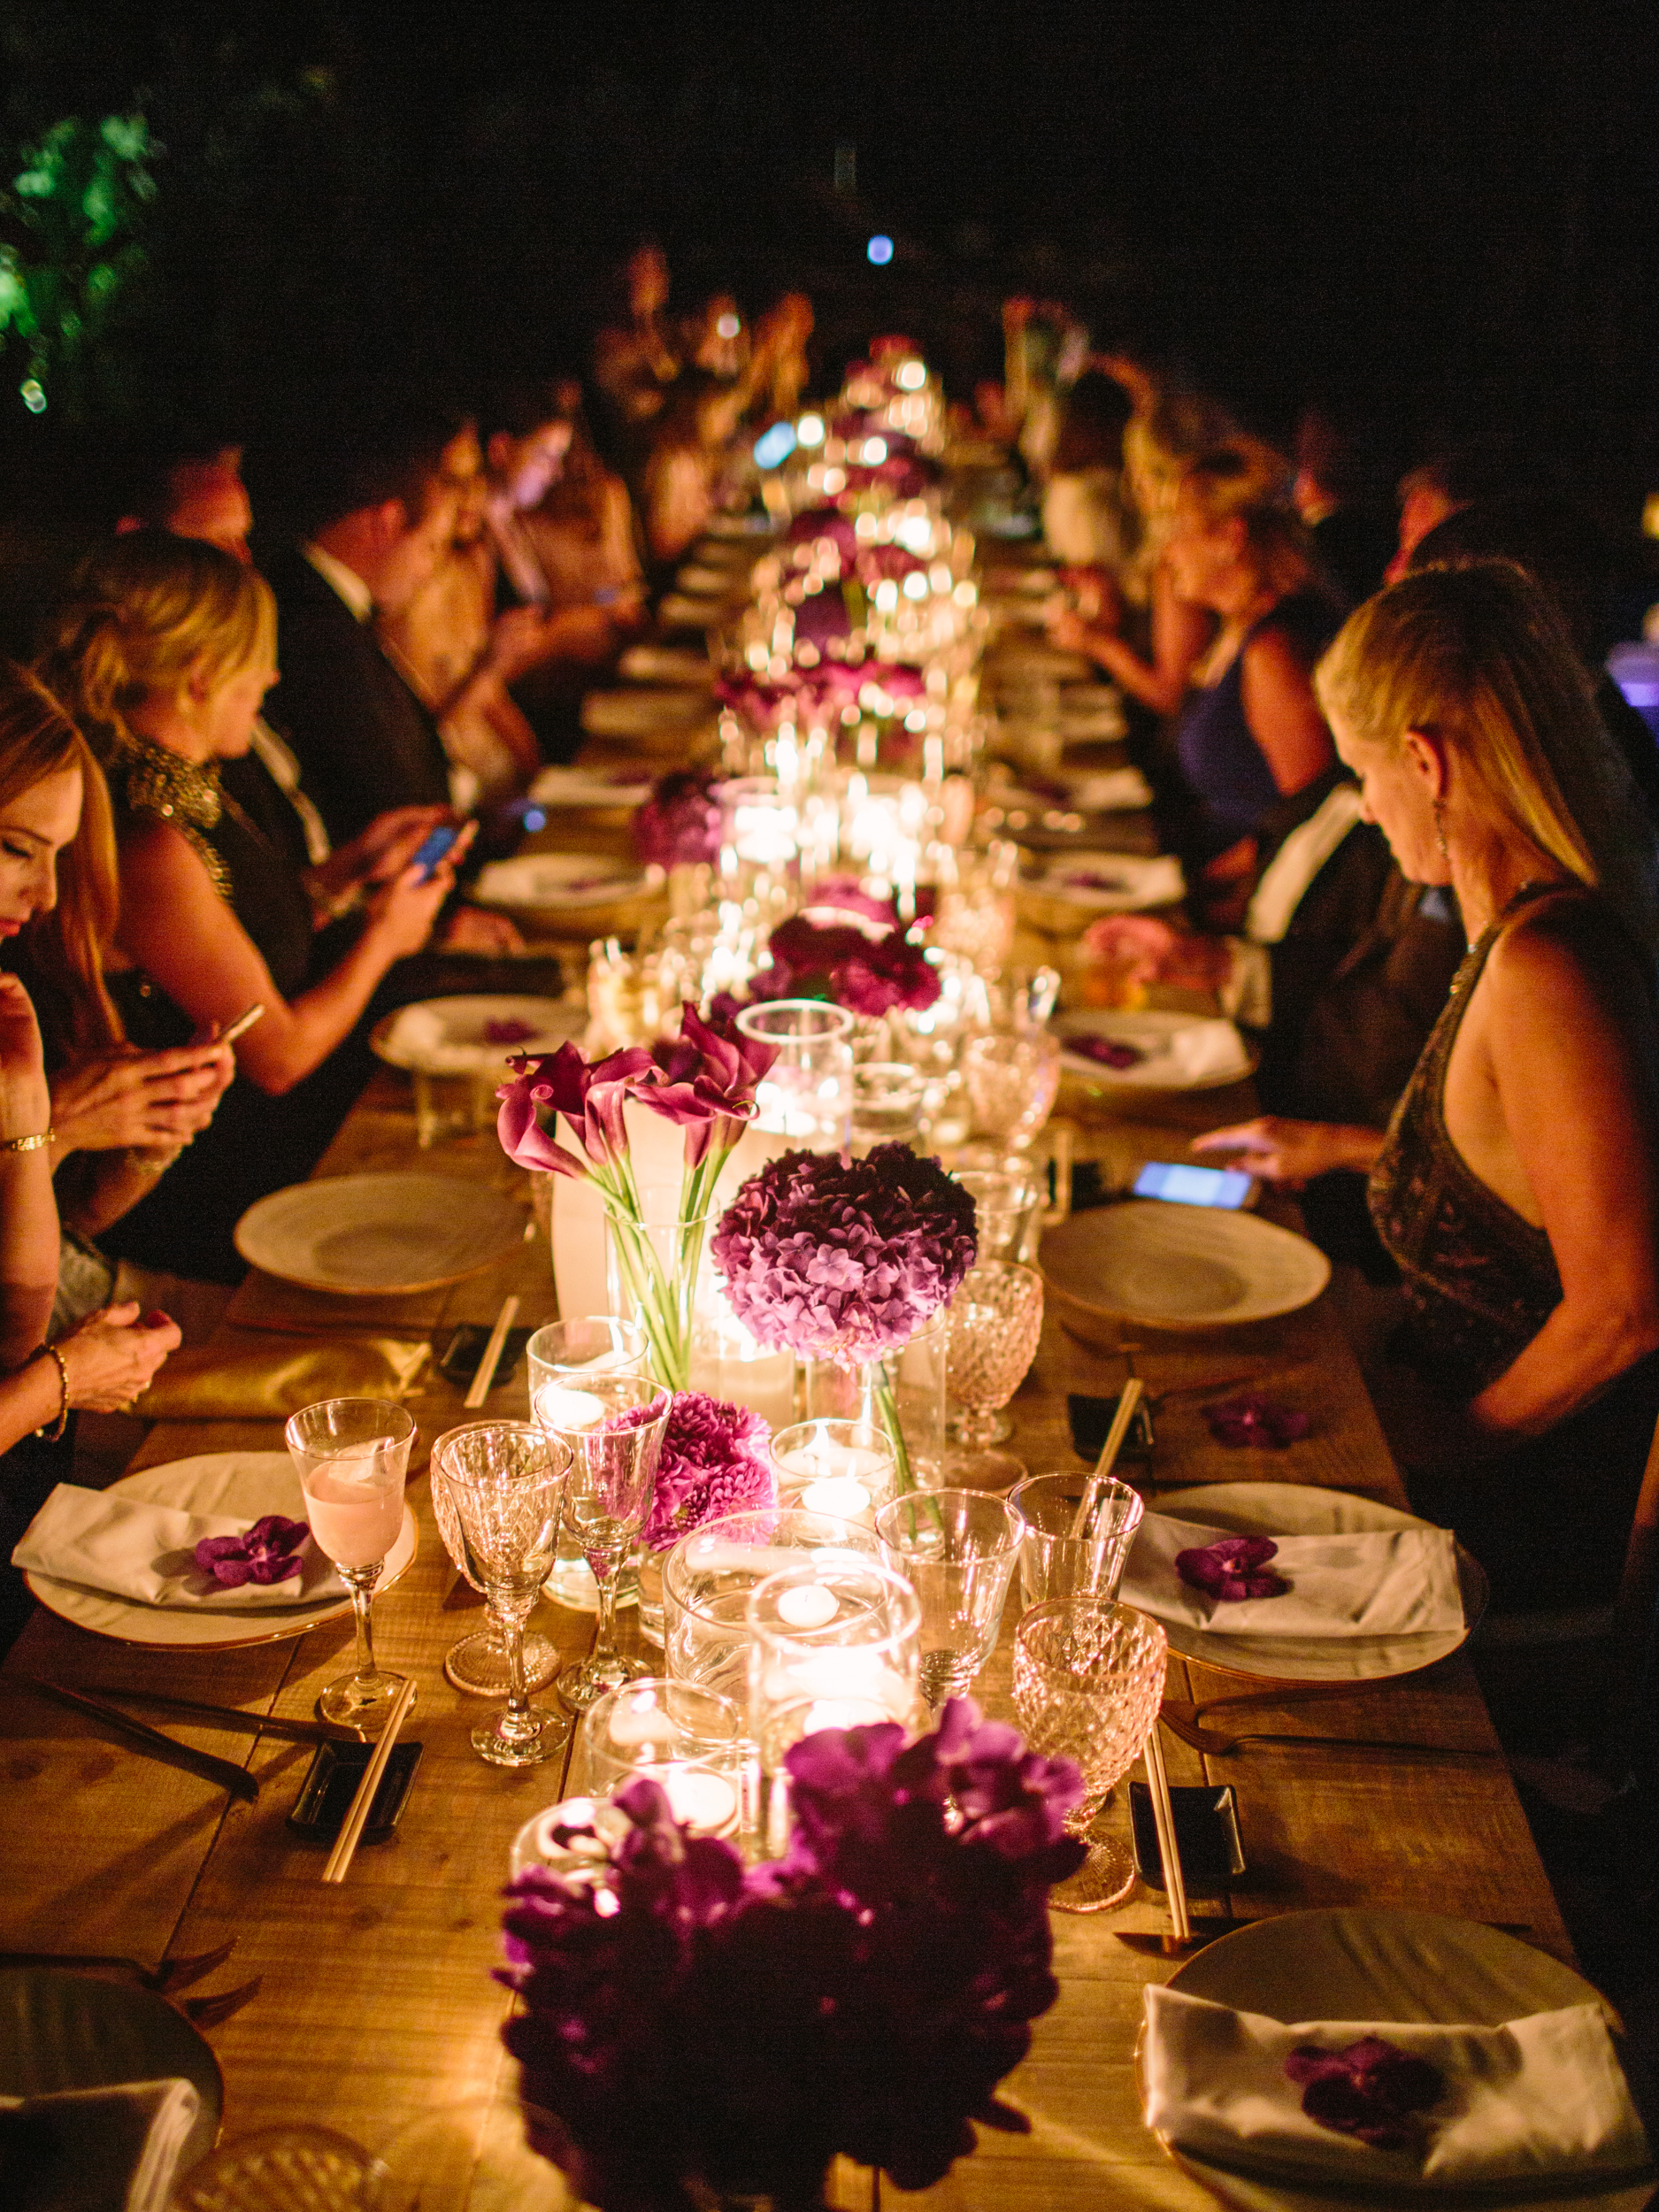 Dinner_&_Party_©_Oliver_Fly_Photography_74.jpg